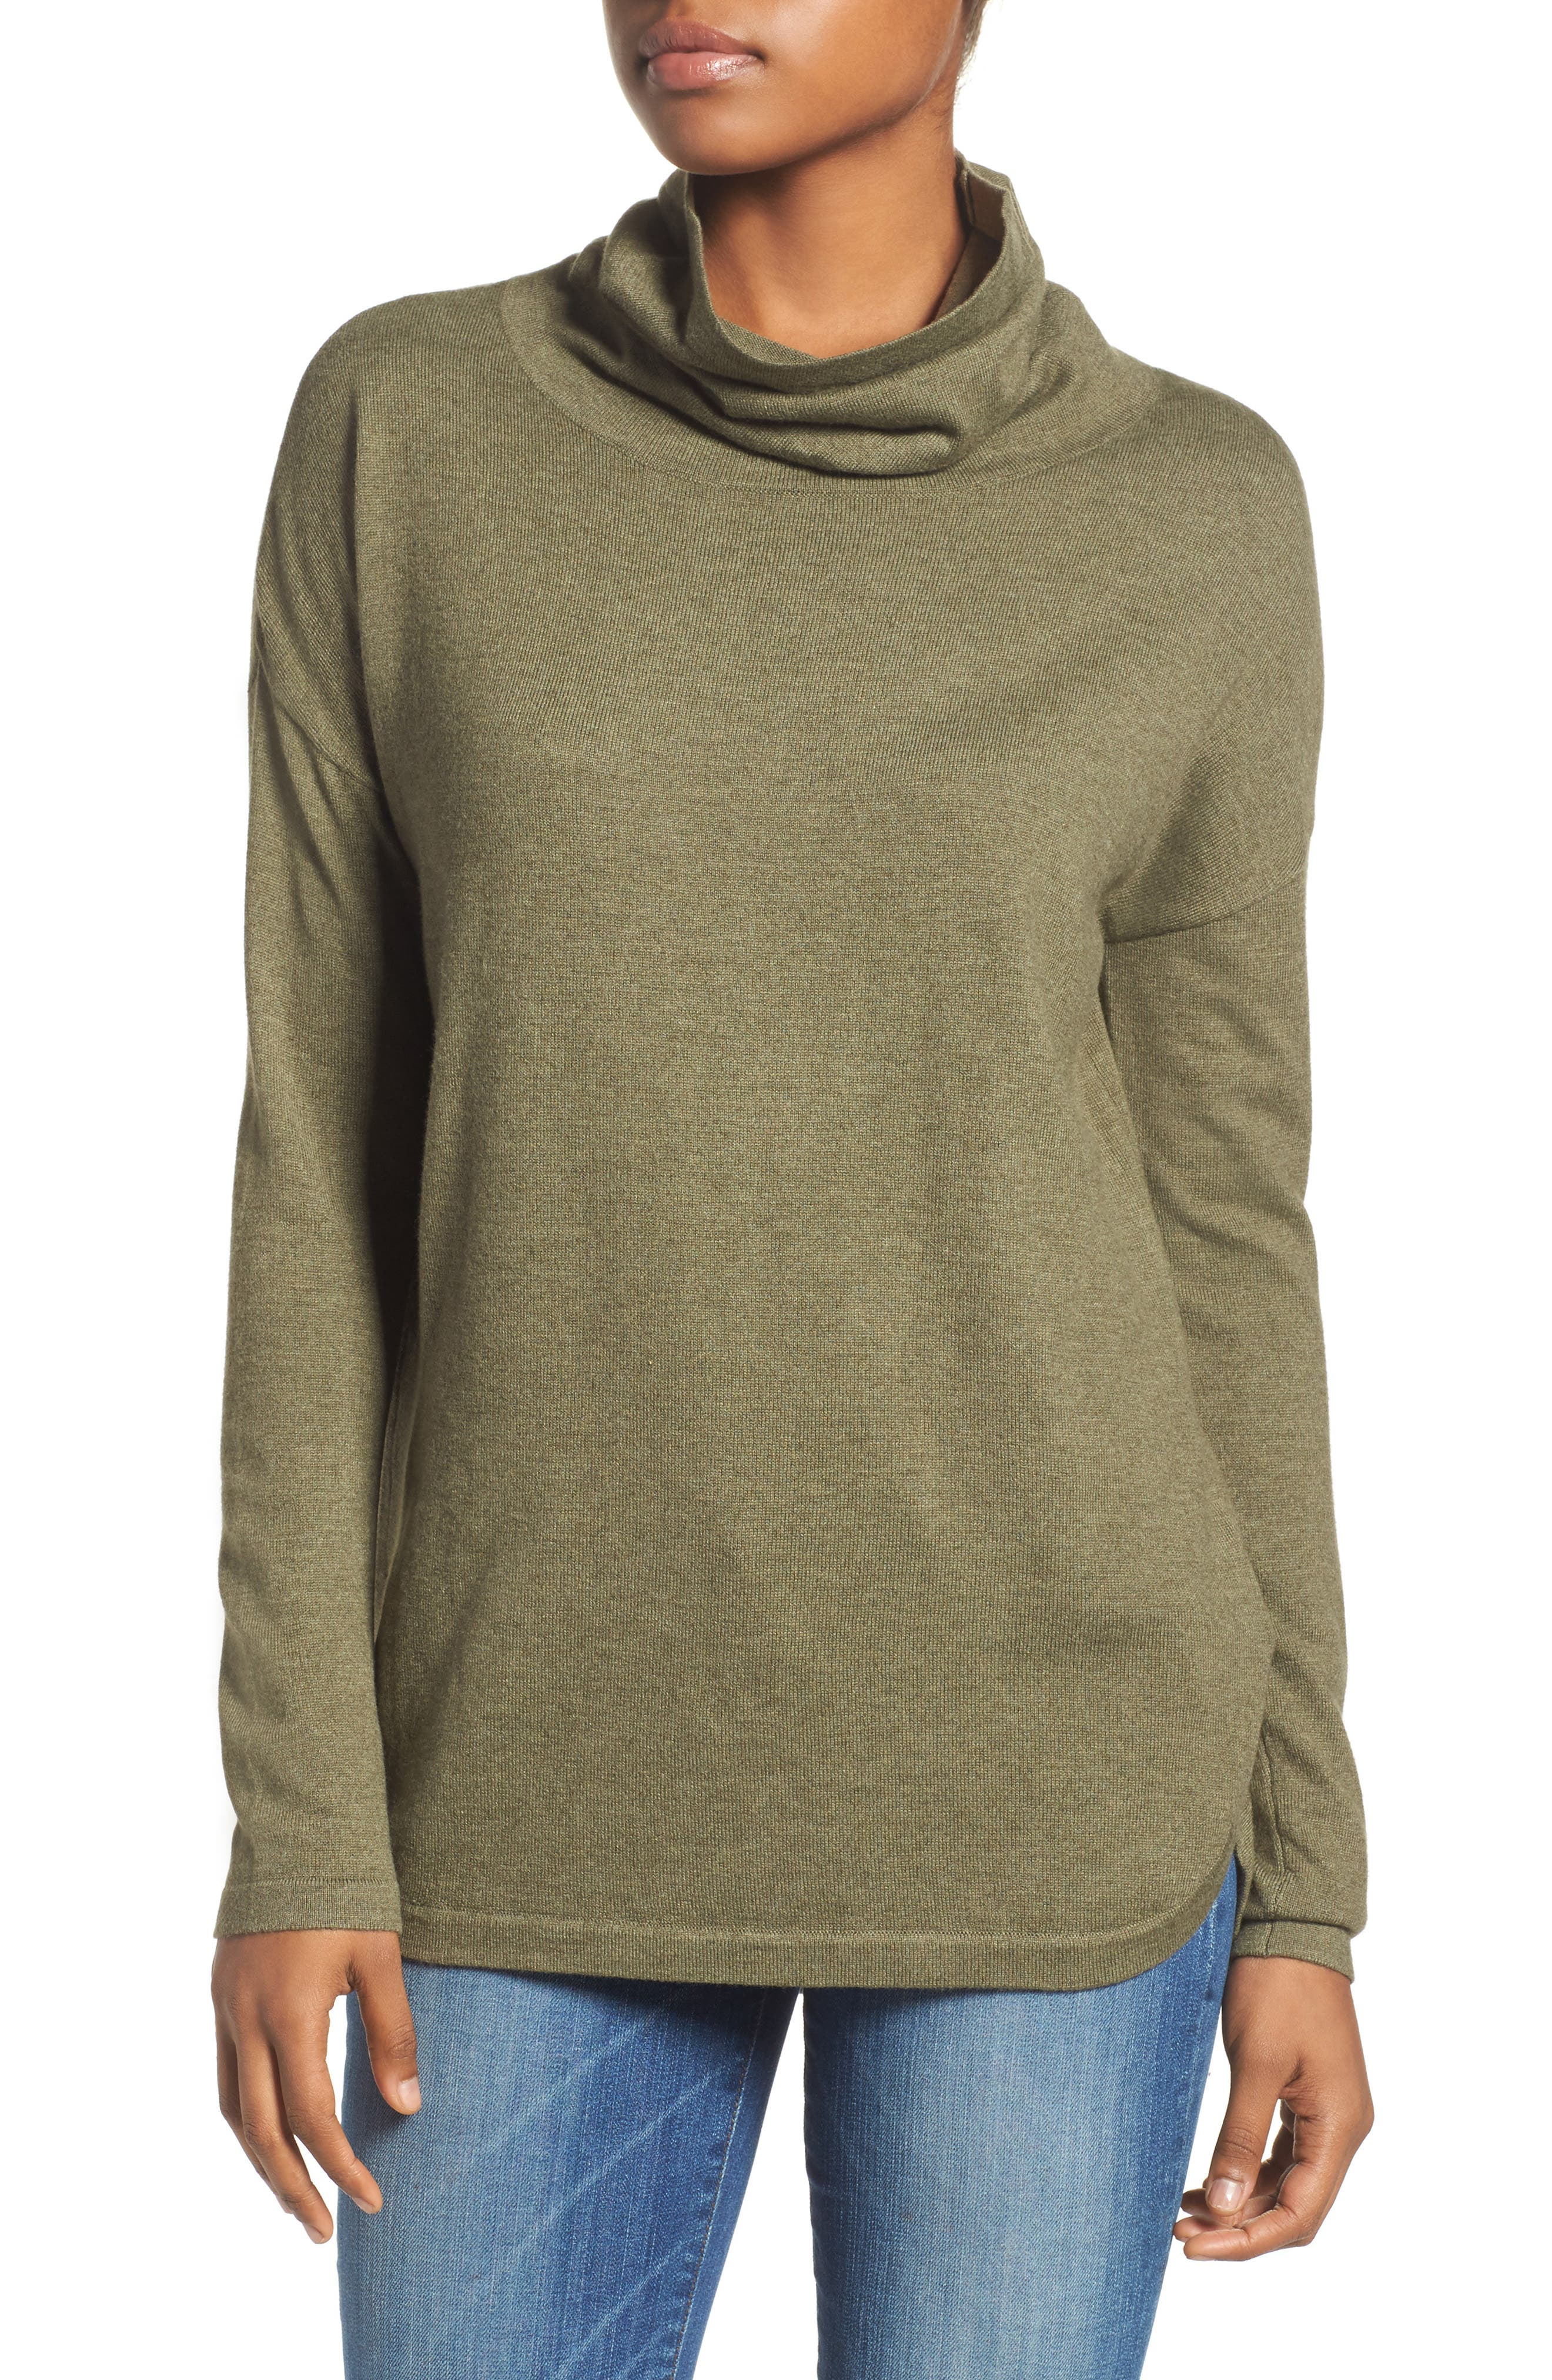 Woodland Tunic Sweater,                         Main,                         color, Burnt Olive Green Heather